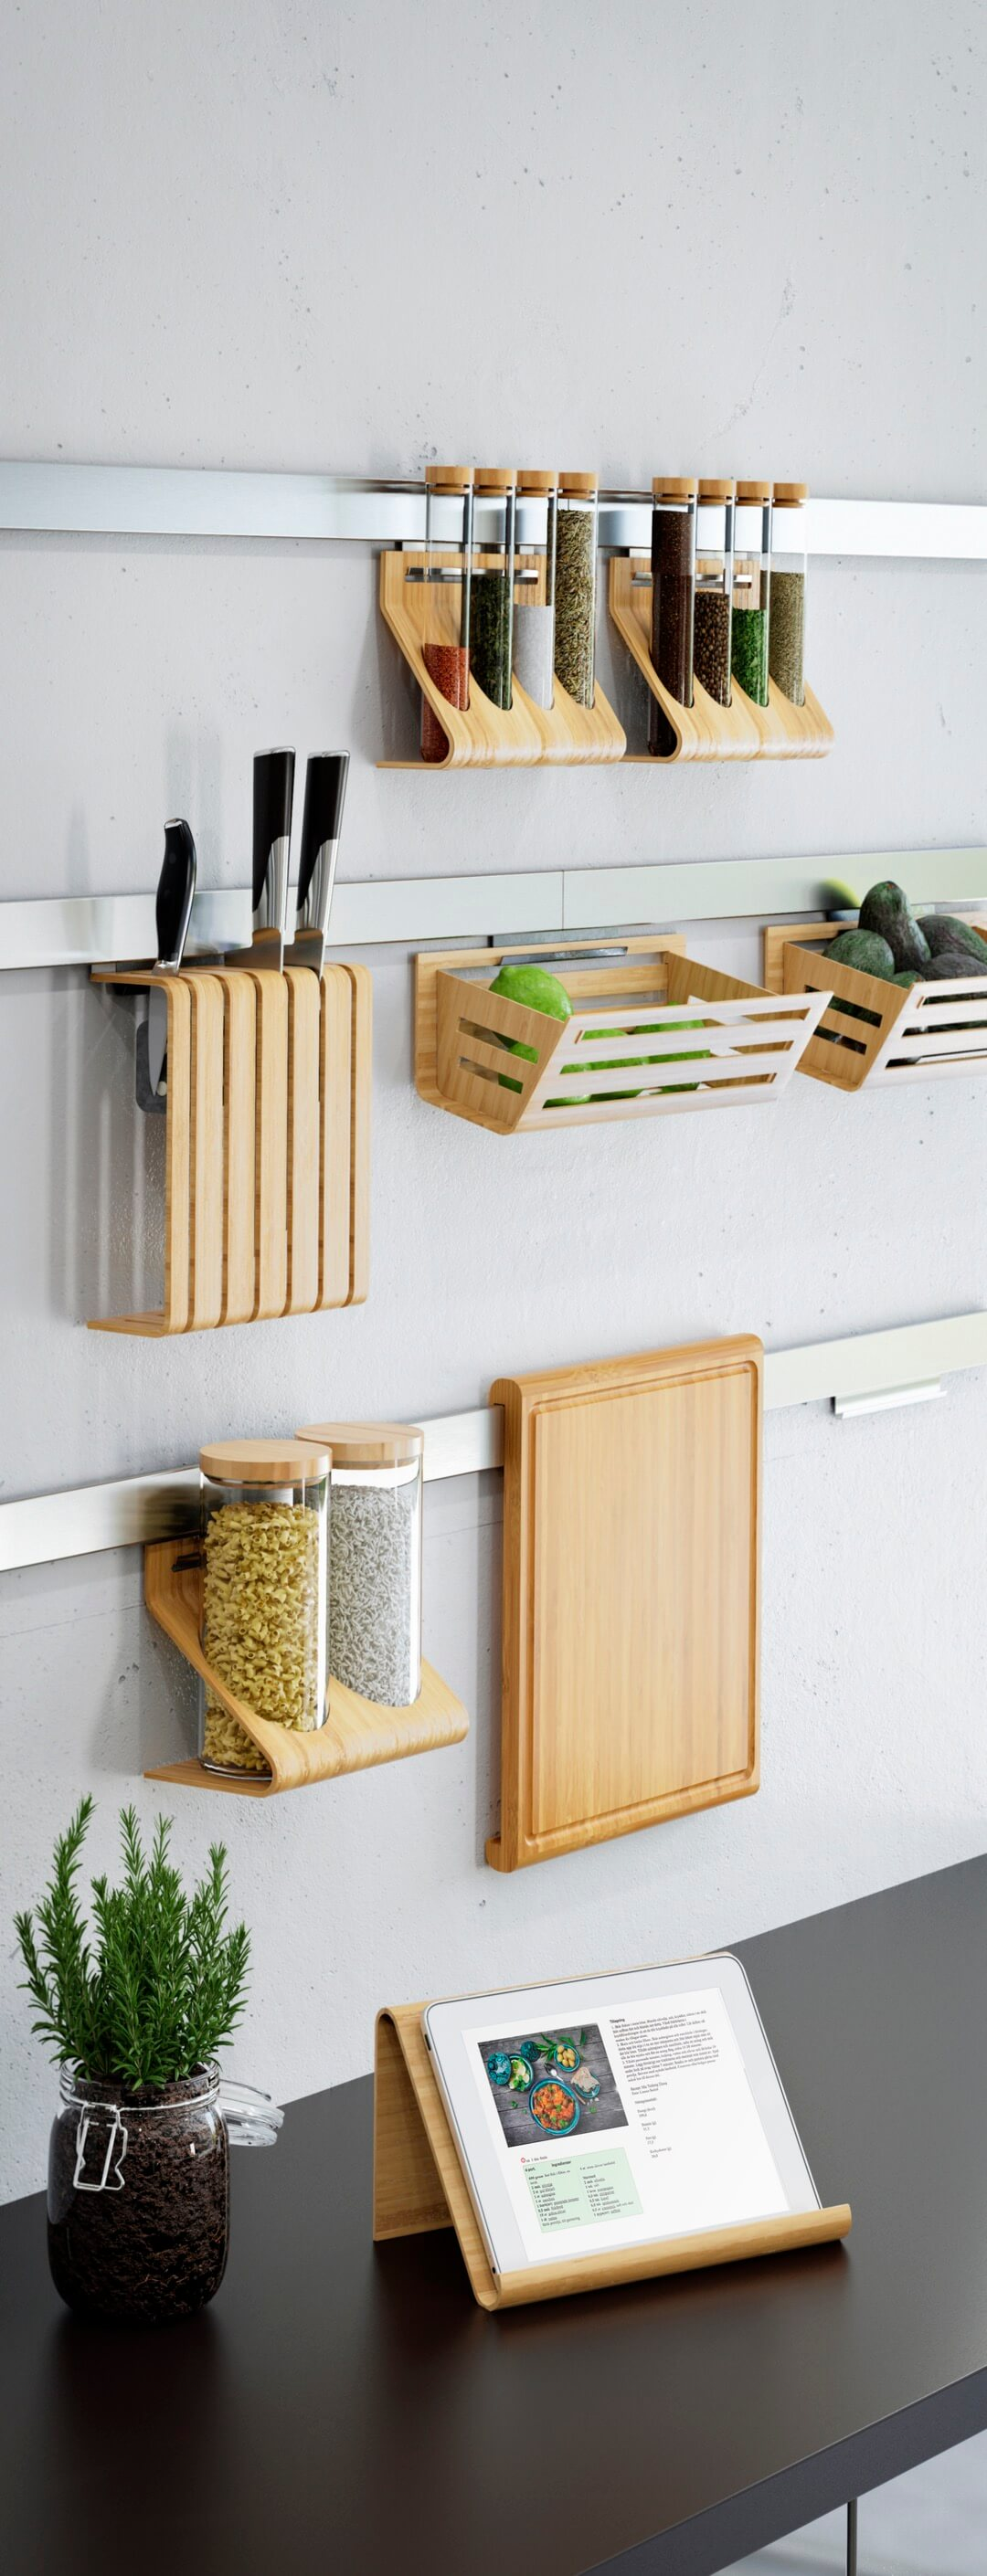 small kitchen storage ideas ikea gallery | 35 Best Small Kitchen Storage Organization Ideas and ...